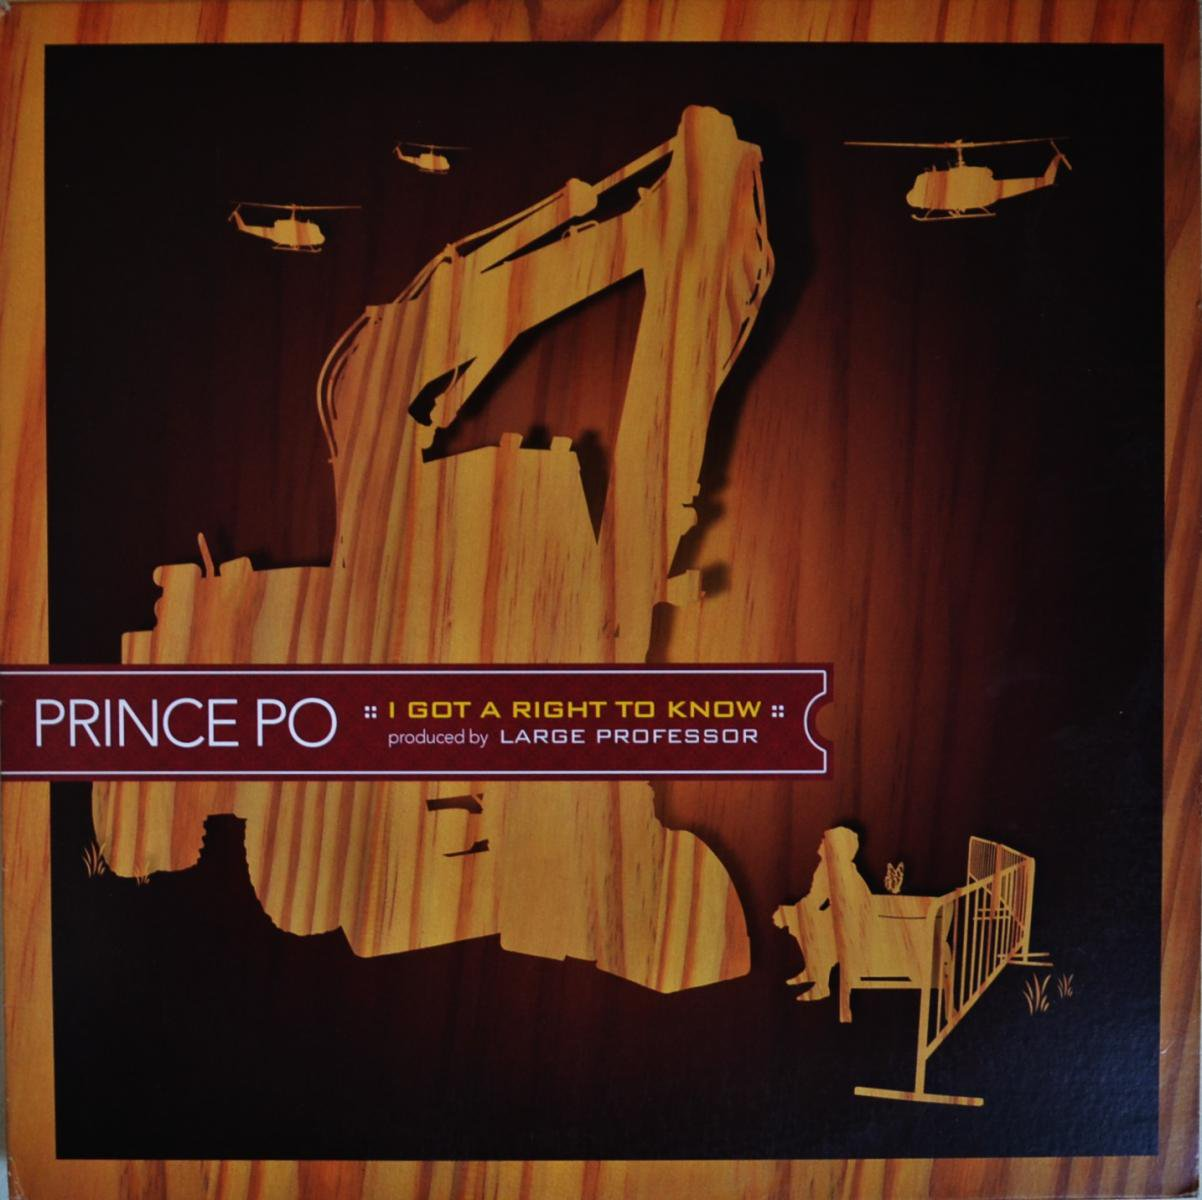 PRINCE PO / I GOT A RIGHT TO KNOW (Prod By LARGE PROFESSOR) (12